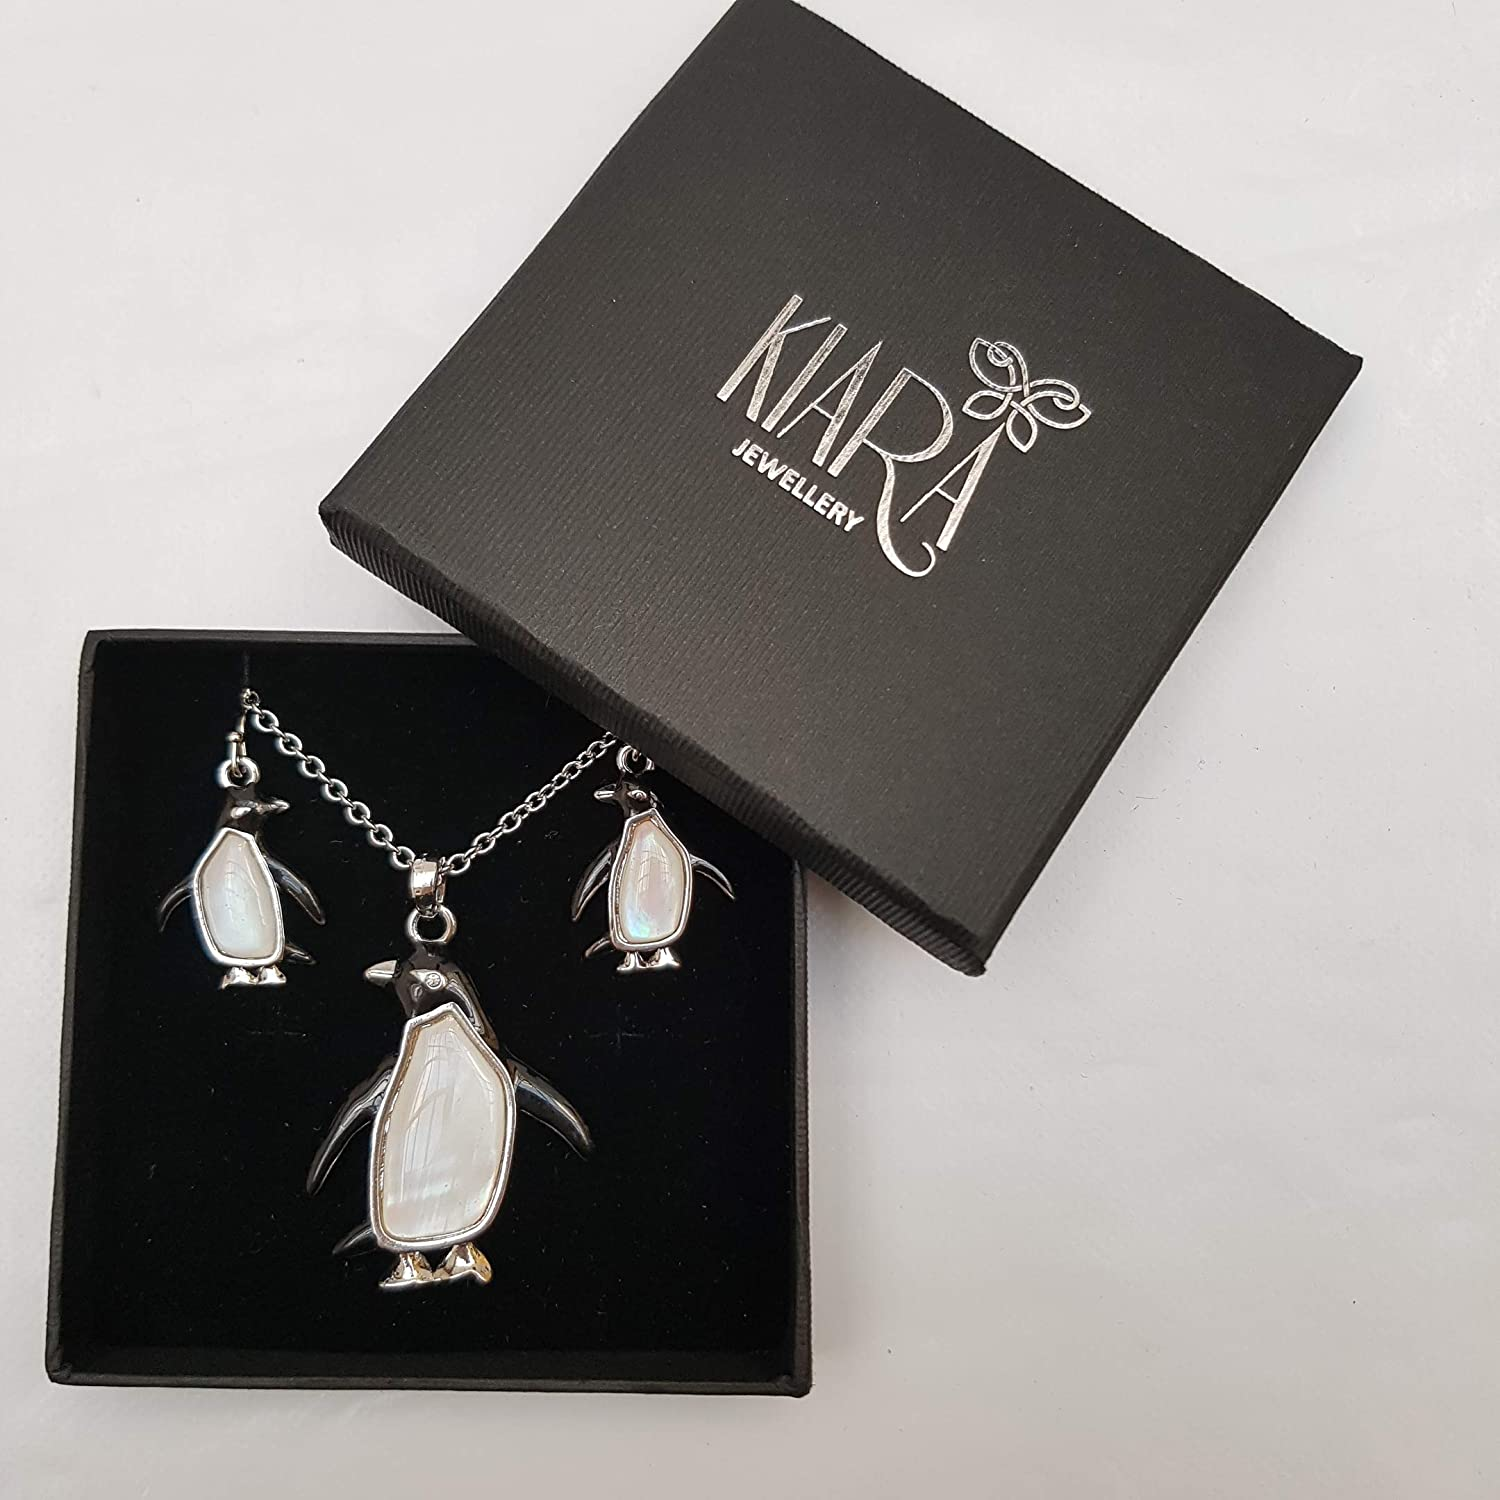 Kiara Jewellery Penguin Boxed Set of Pendant Inlaid With Mother of Pearl on 18 Trace Chain Together With Matching Hypoallergenic Rhodium plated Earrings.